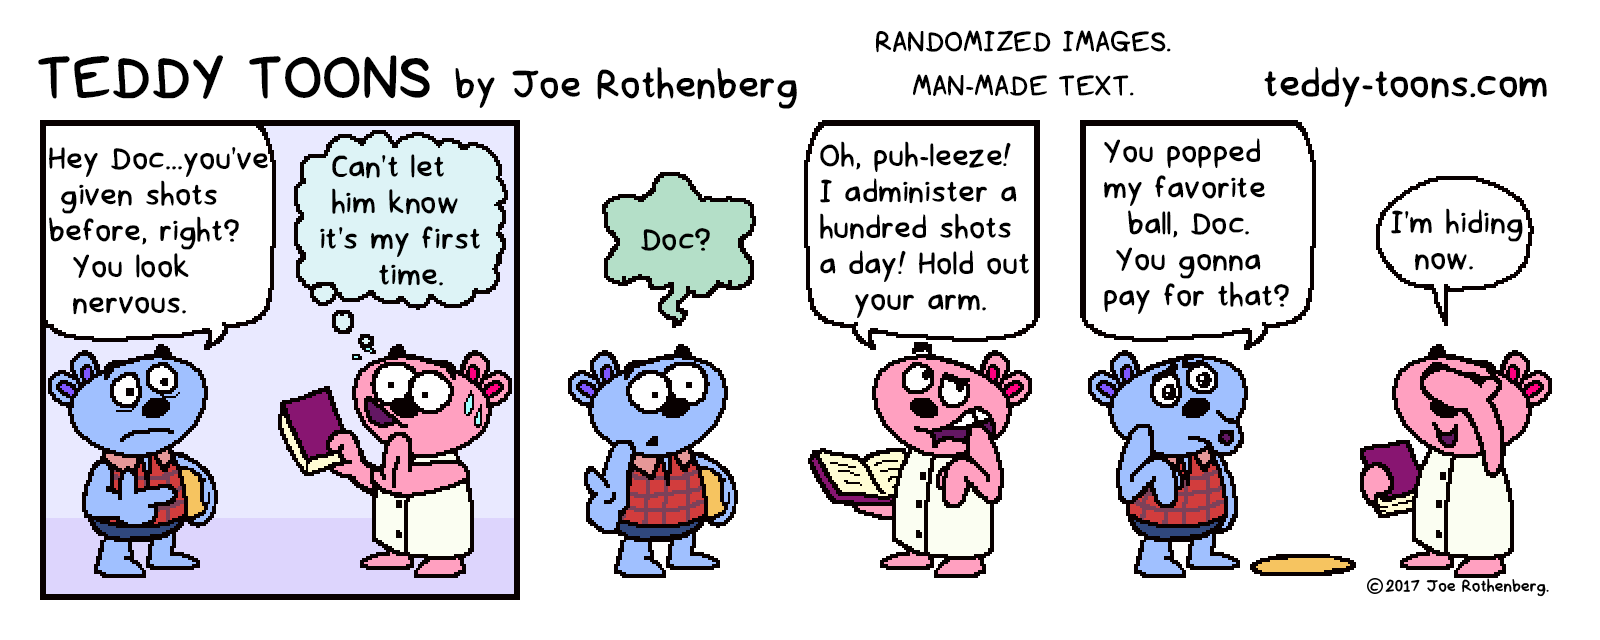 03-06-17.png